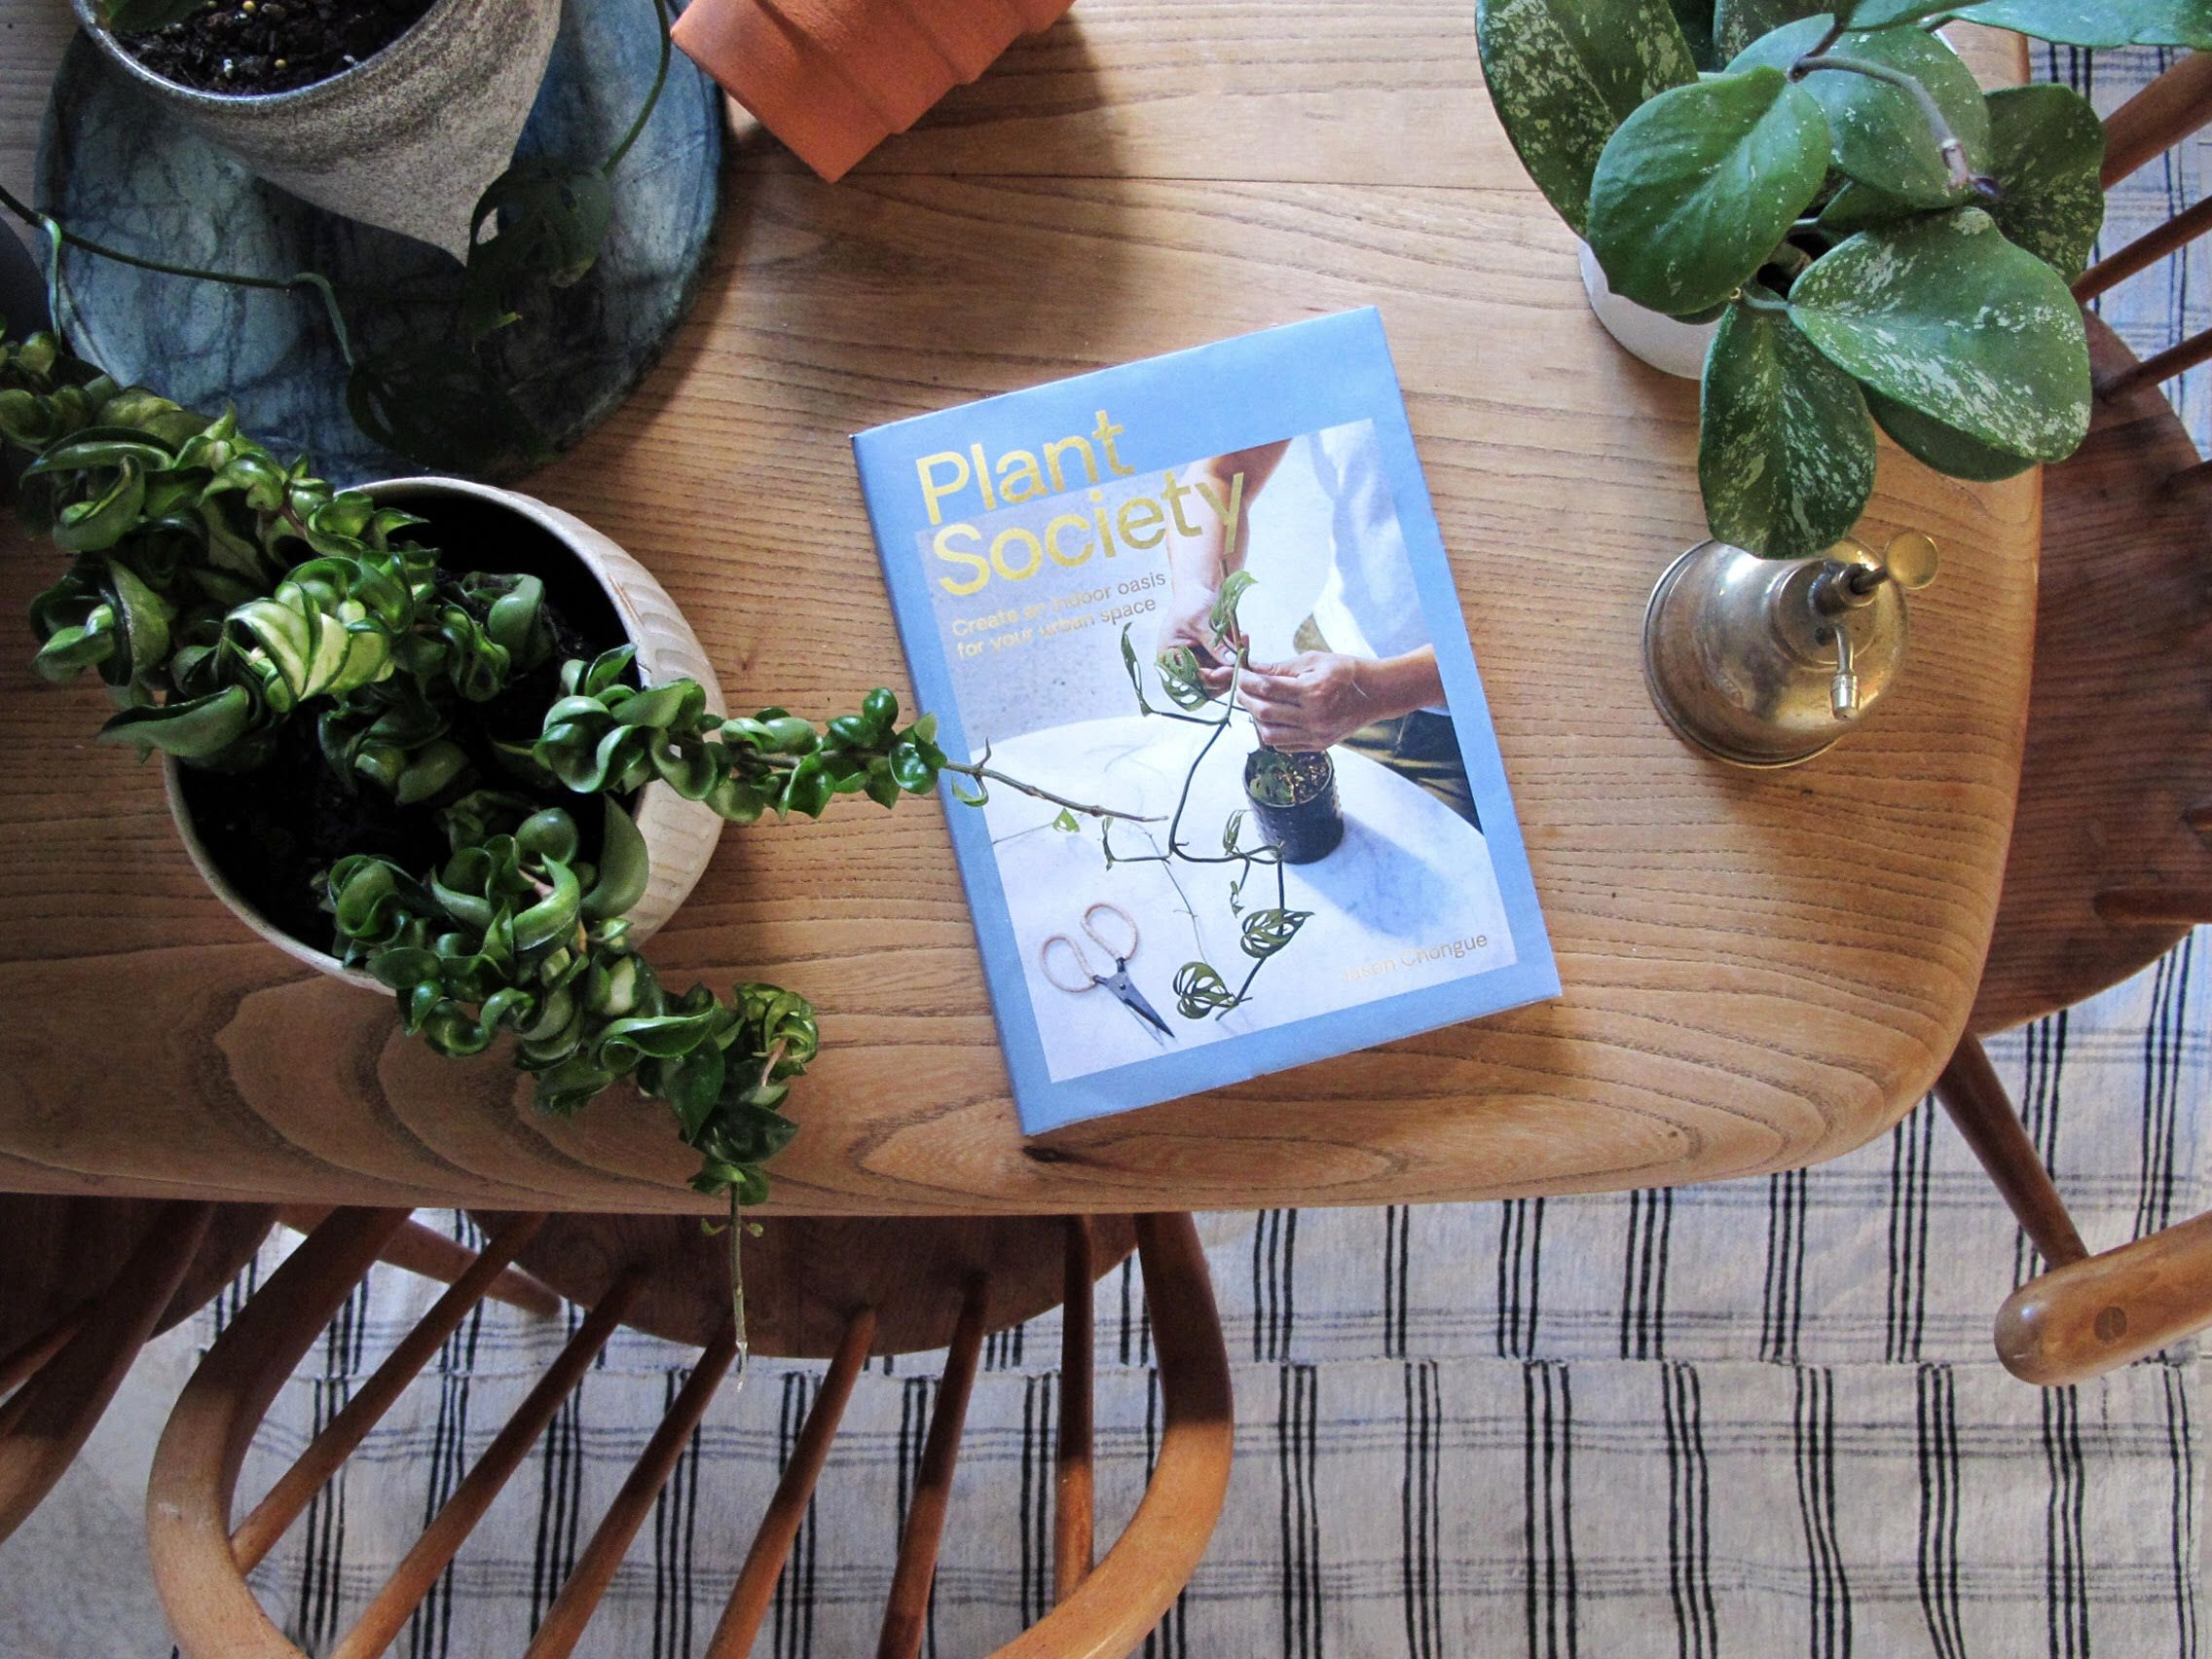 If acquiring a green thumb is on your to-do list, this book is the place to start